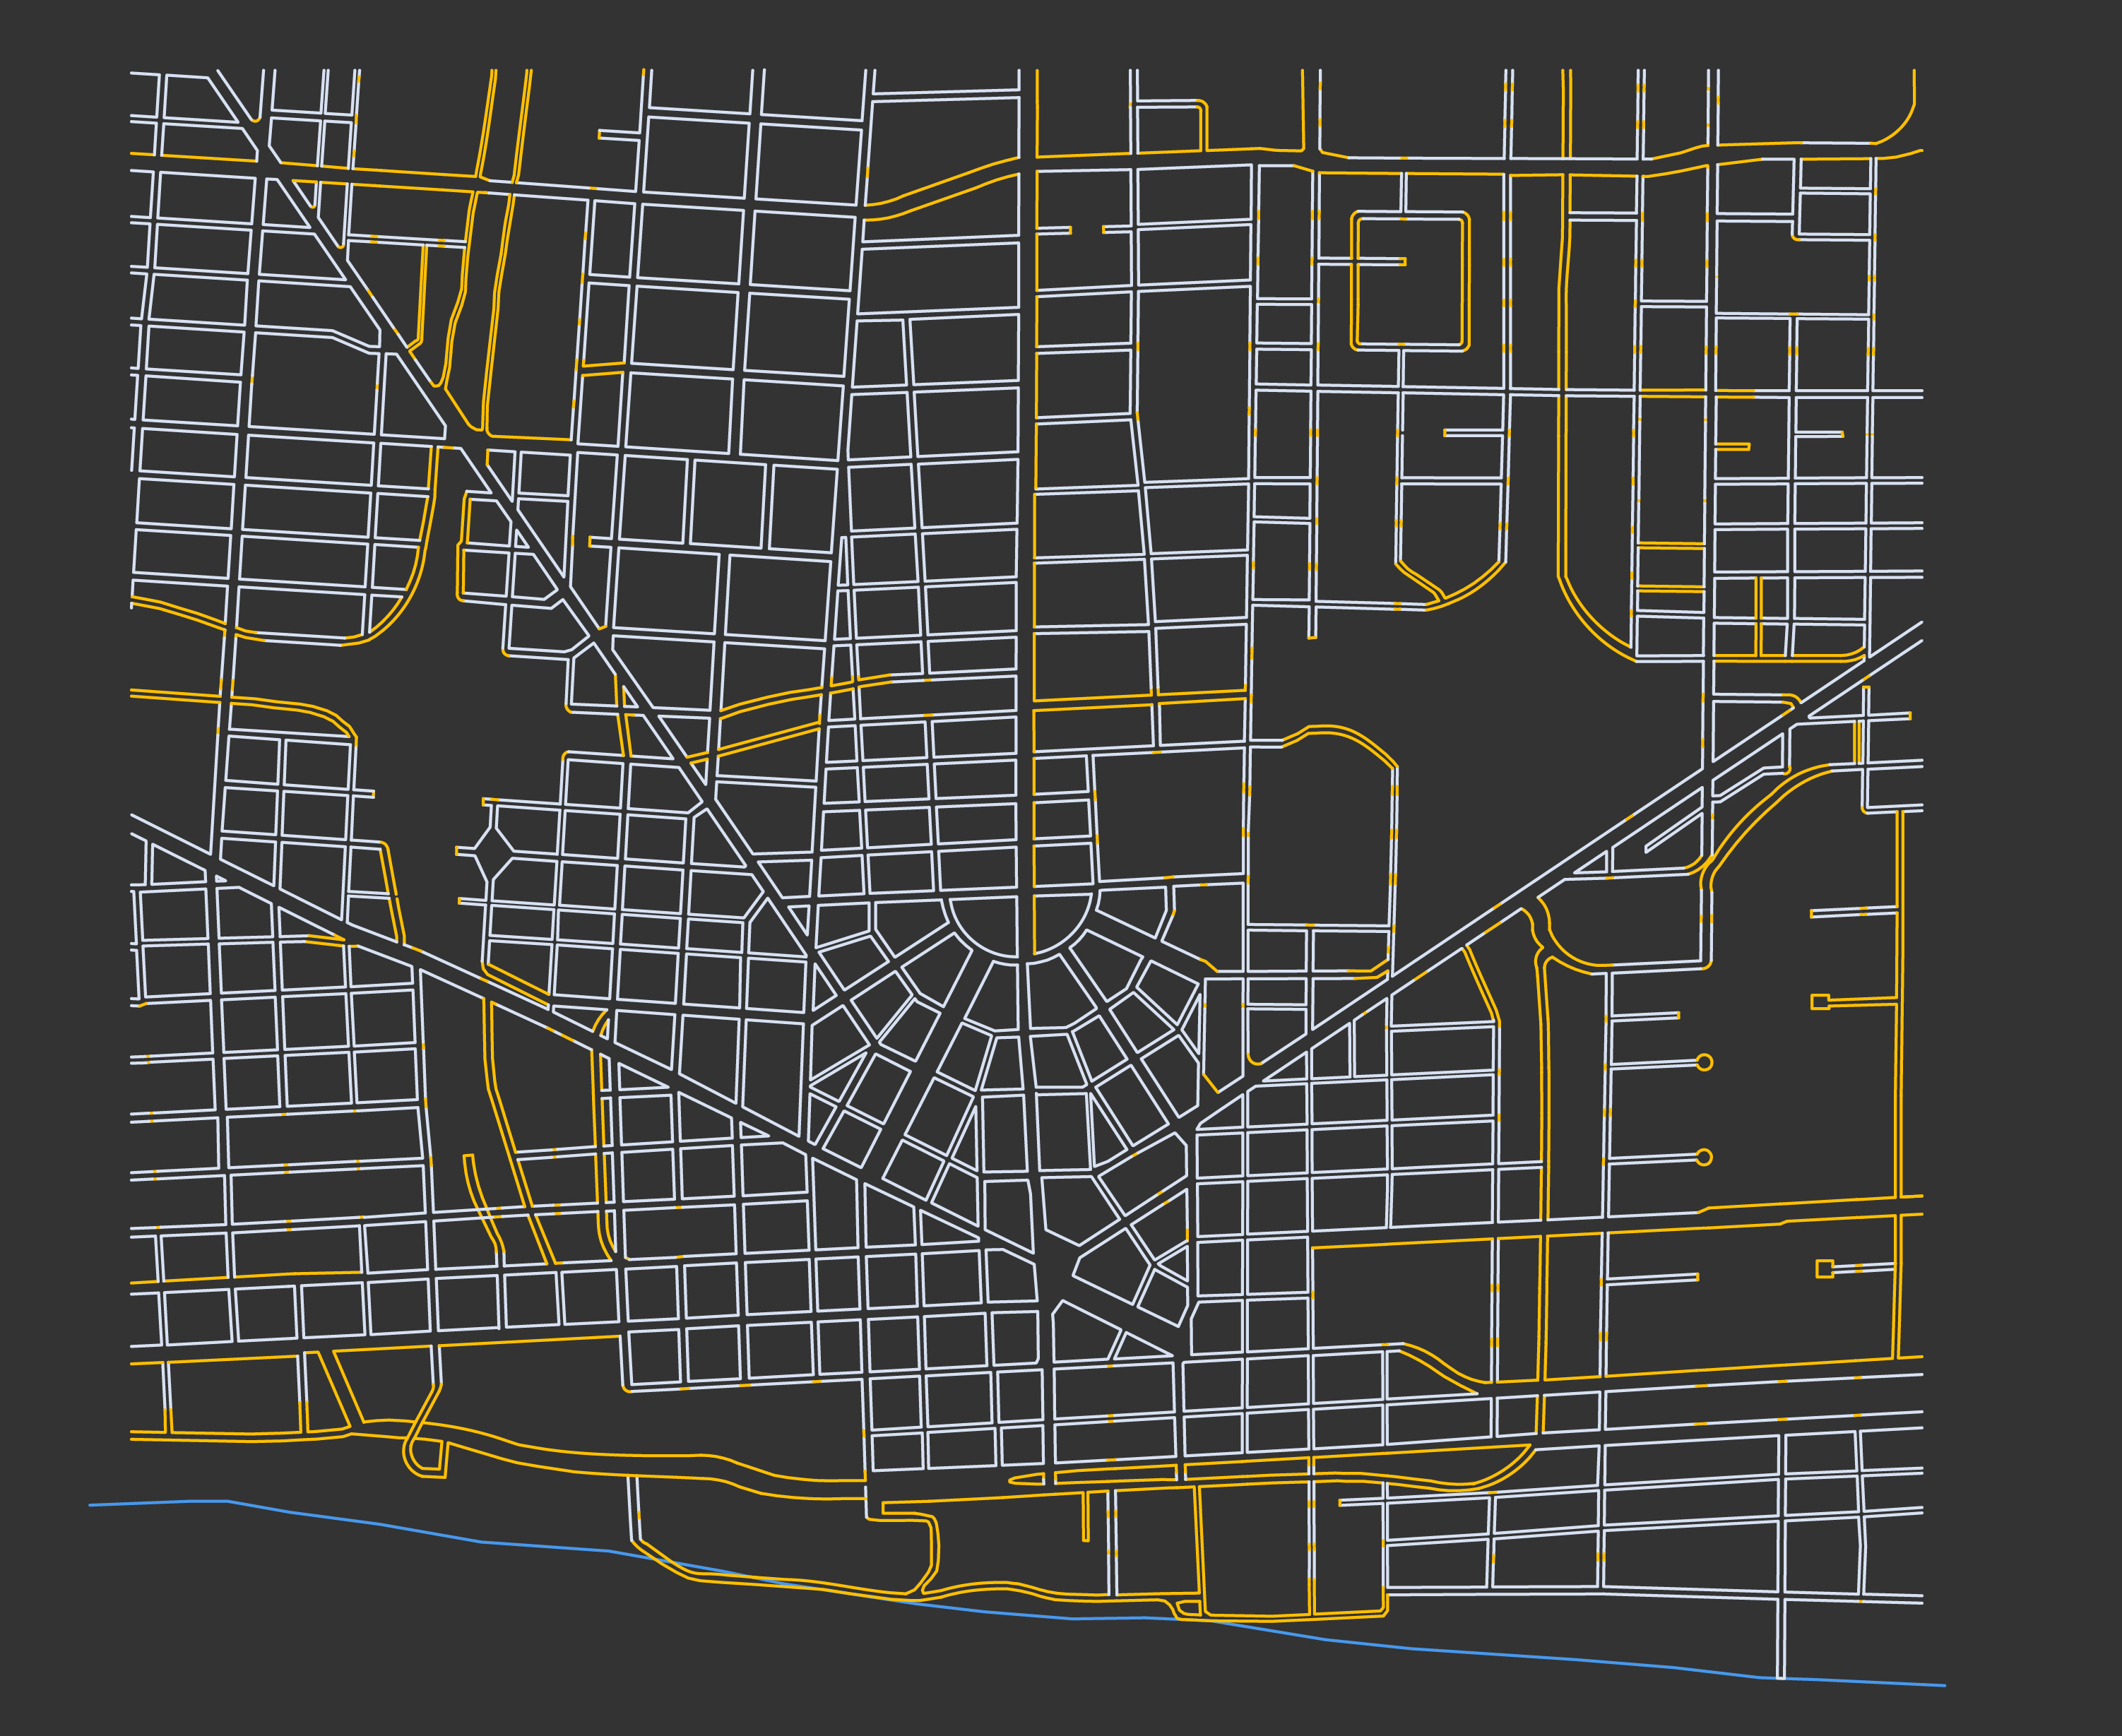 Tearing of the Urban Fabric Data Driven Detroit